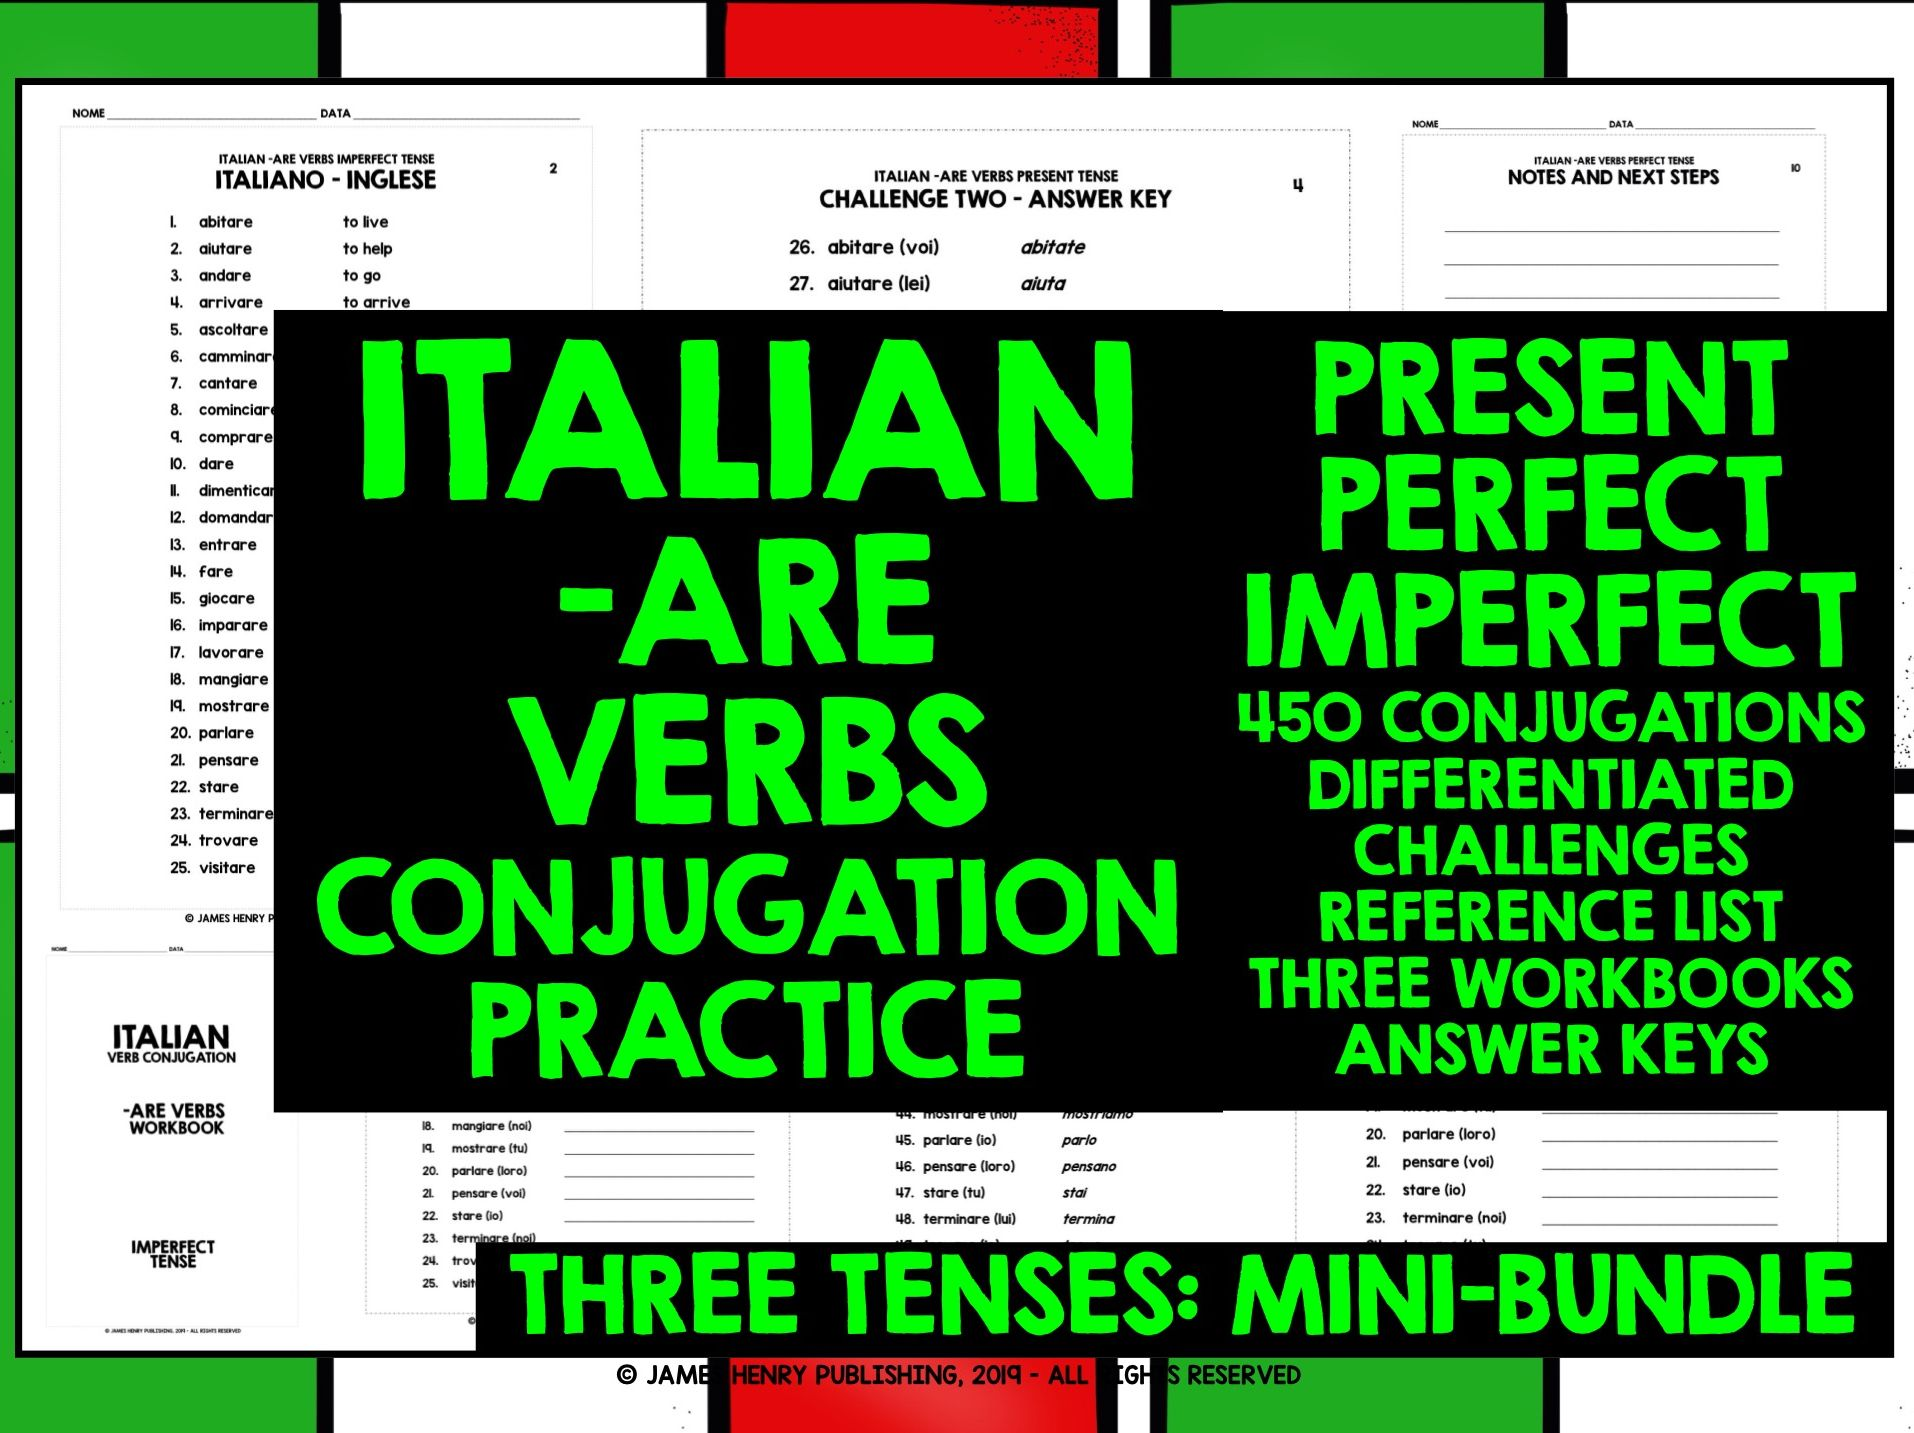 ITALIAN -ARE VERBS CONJUGATION MINI-BUNDLE #1